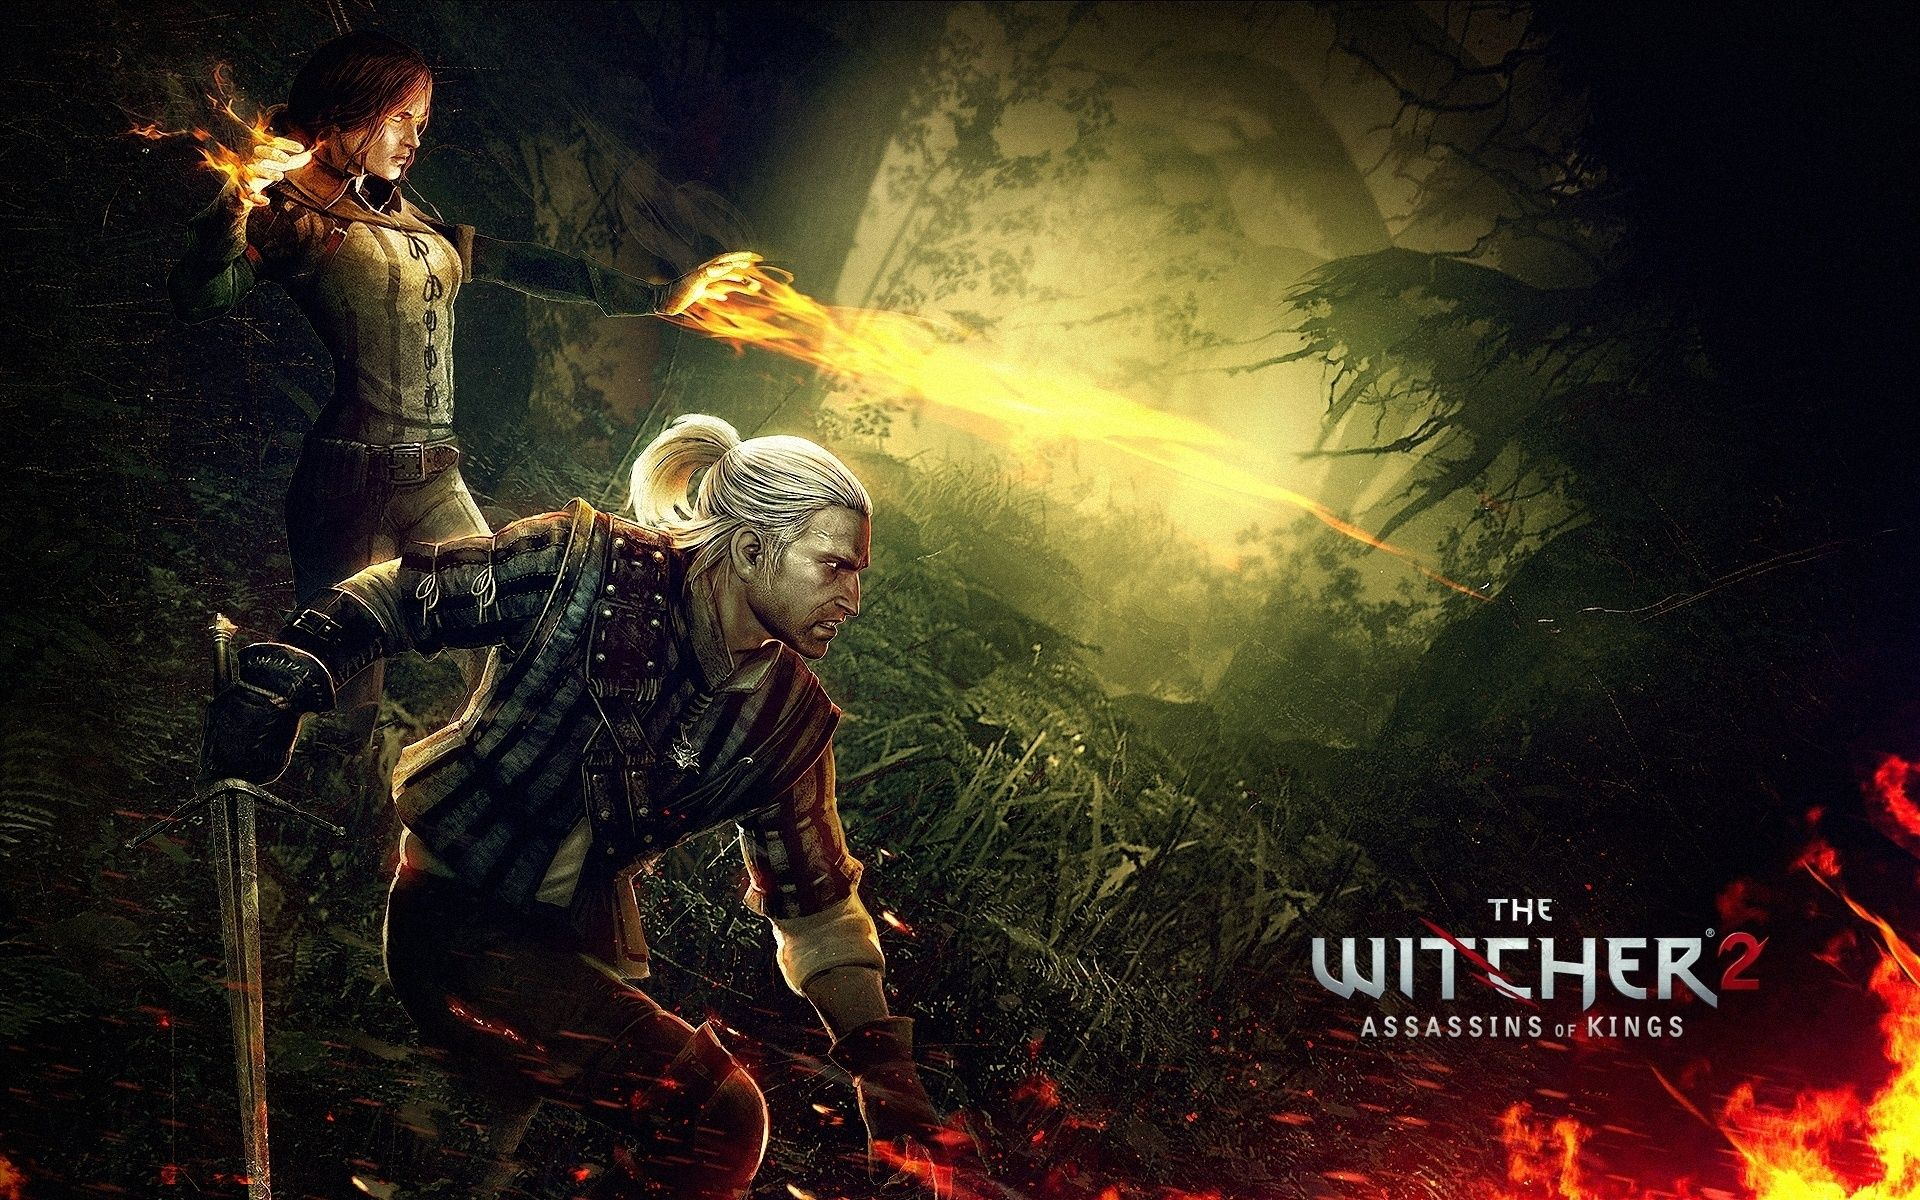 The Witcher Wallpaper 42022 1920x1200 Px Hdwallsource Com The Witcher Witcher 2 Assassin